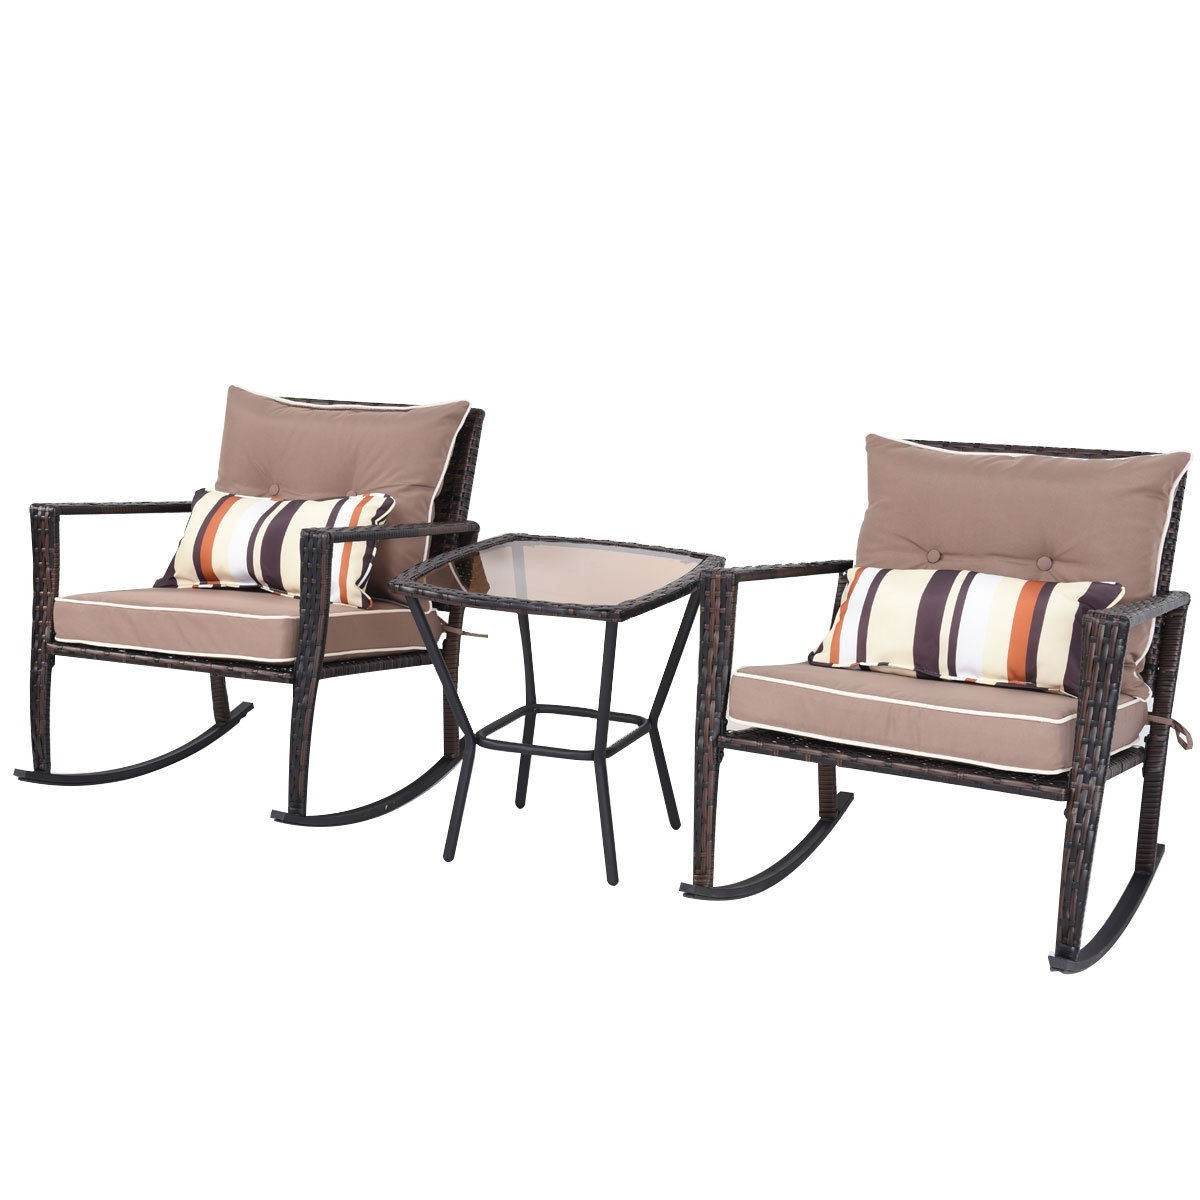 Wicker Rocking Chair Brown 3 Piece Patio Set Rattan Wicker Rocking Chairs With Coffee Table